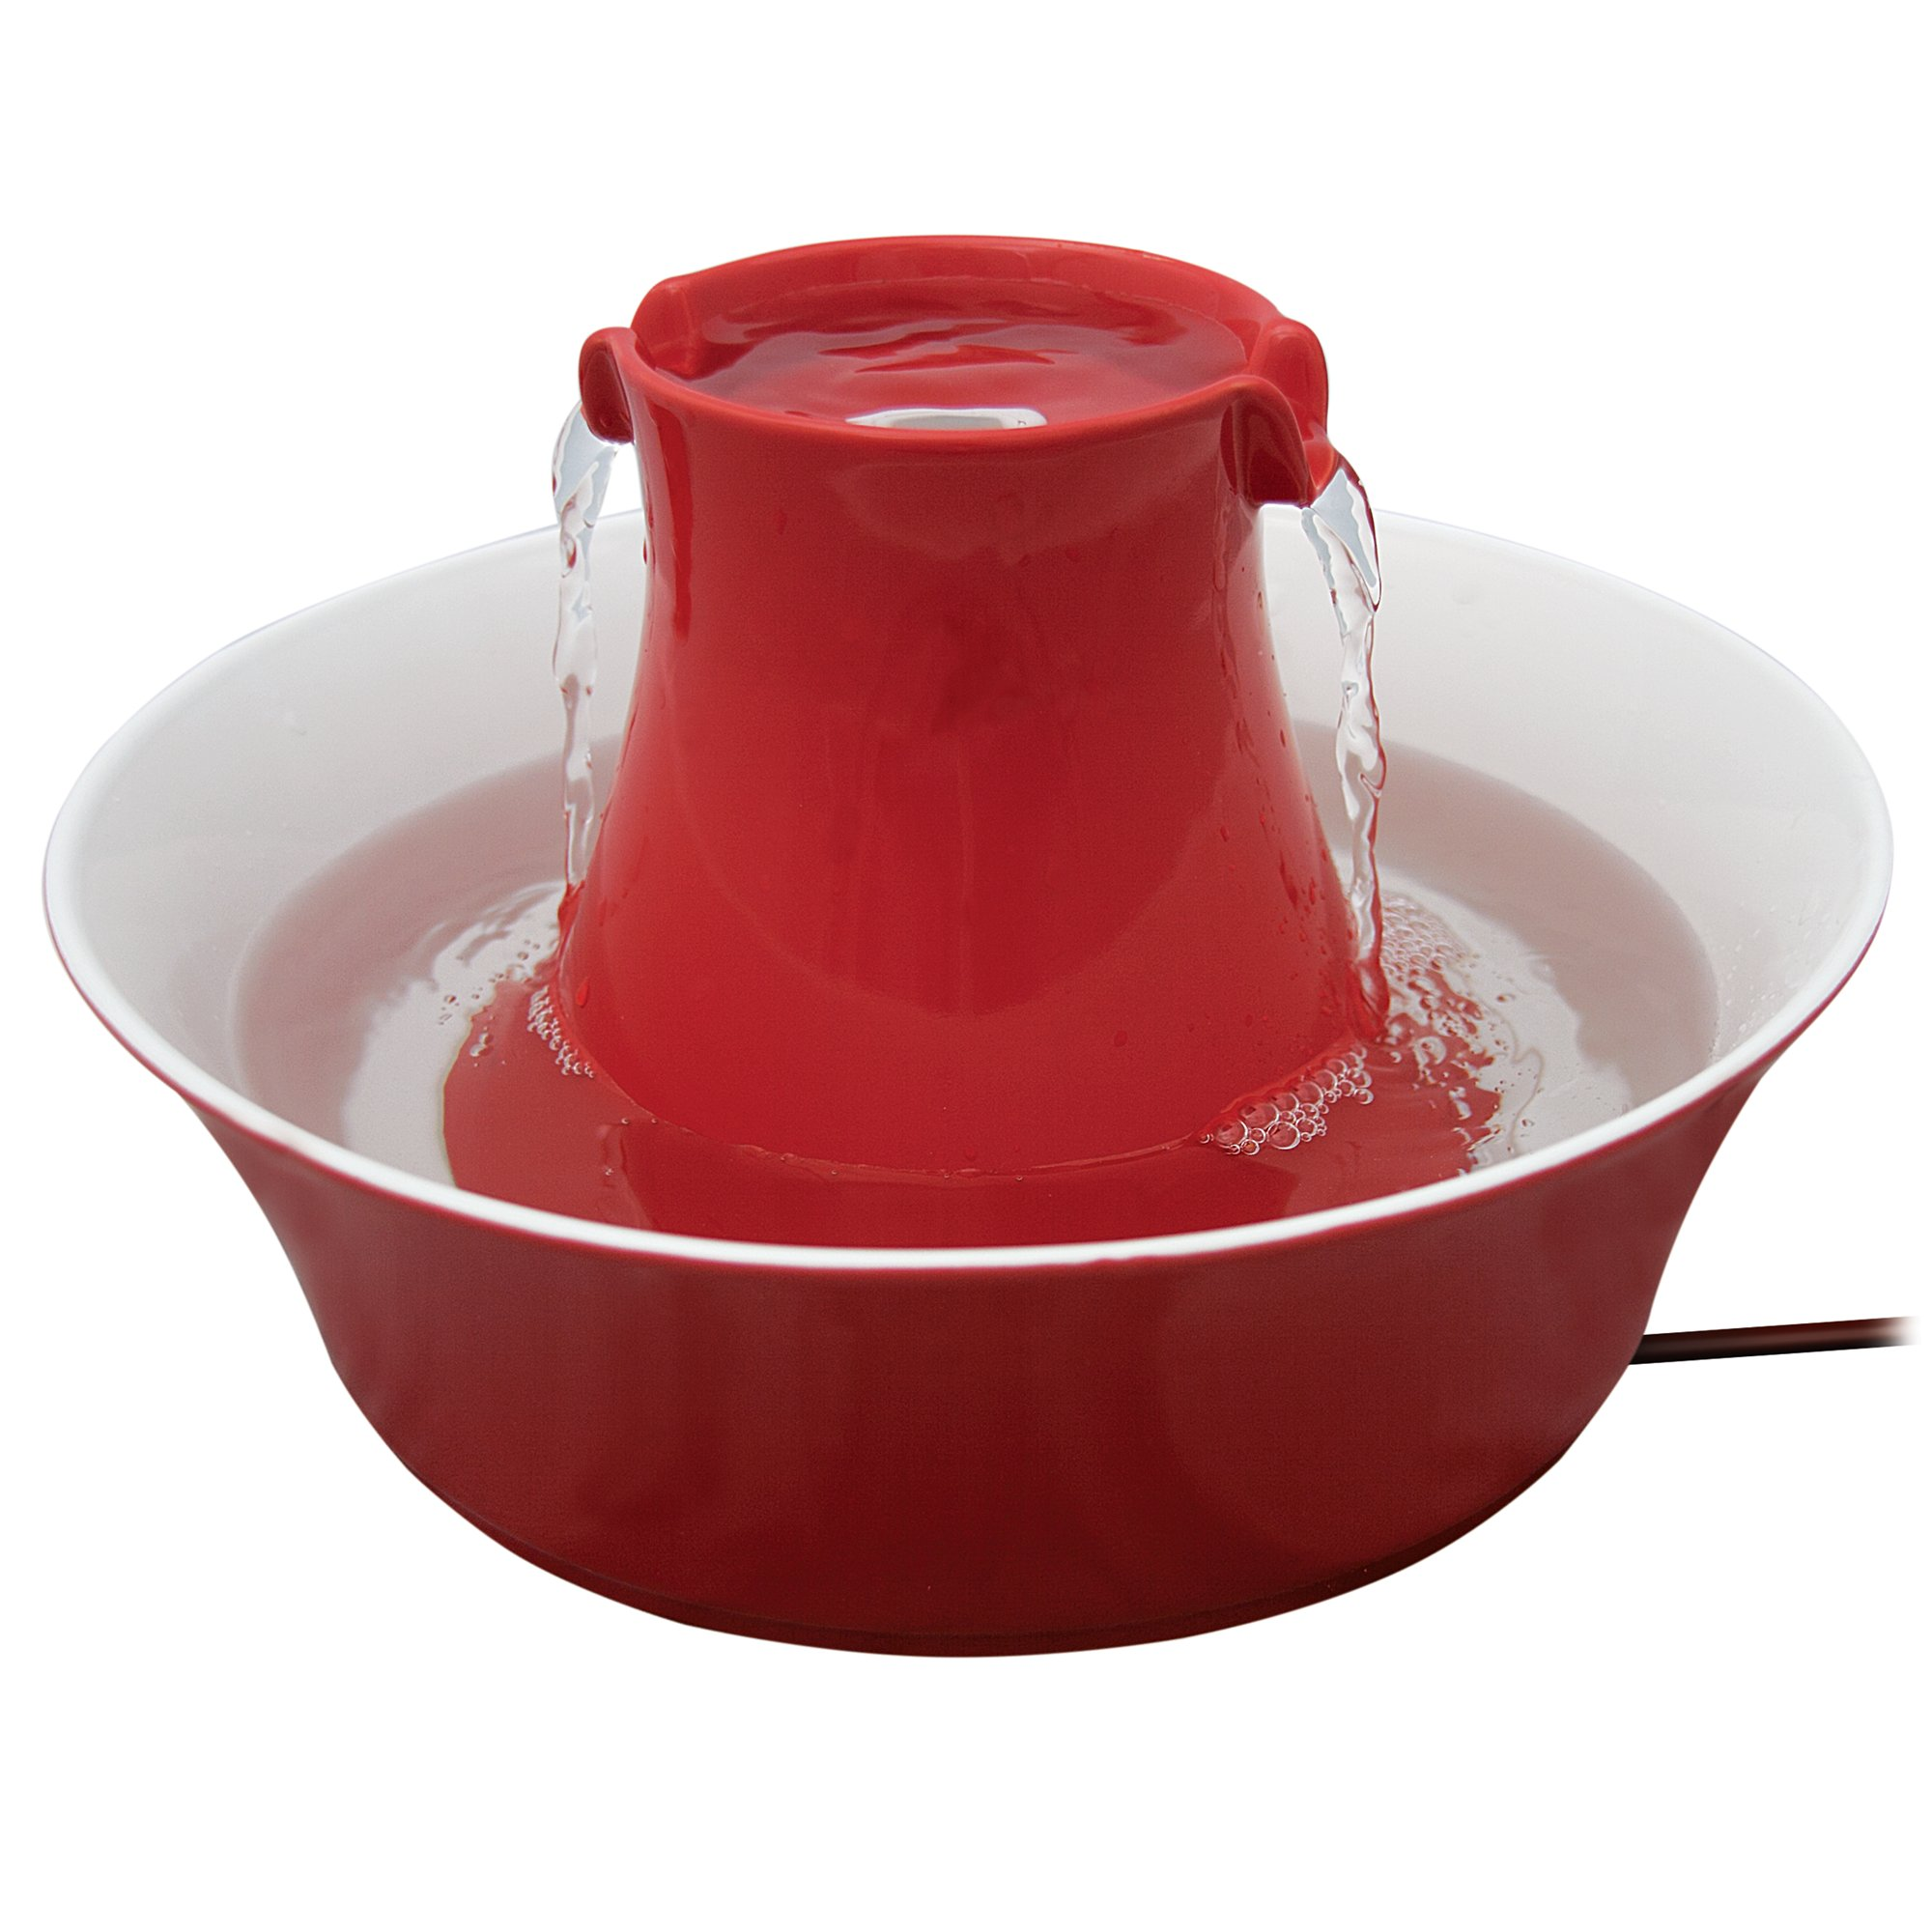 PetSafe Drinkwell Red Avalon Fountain